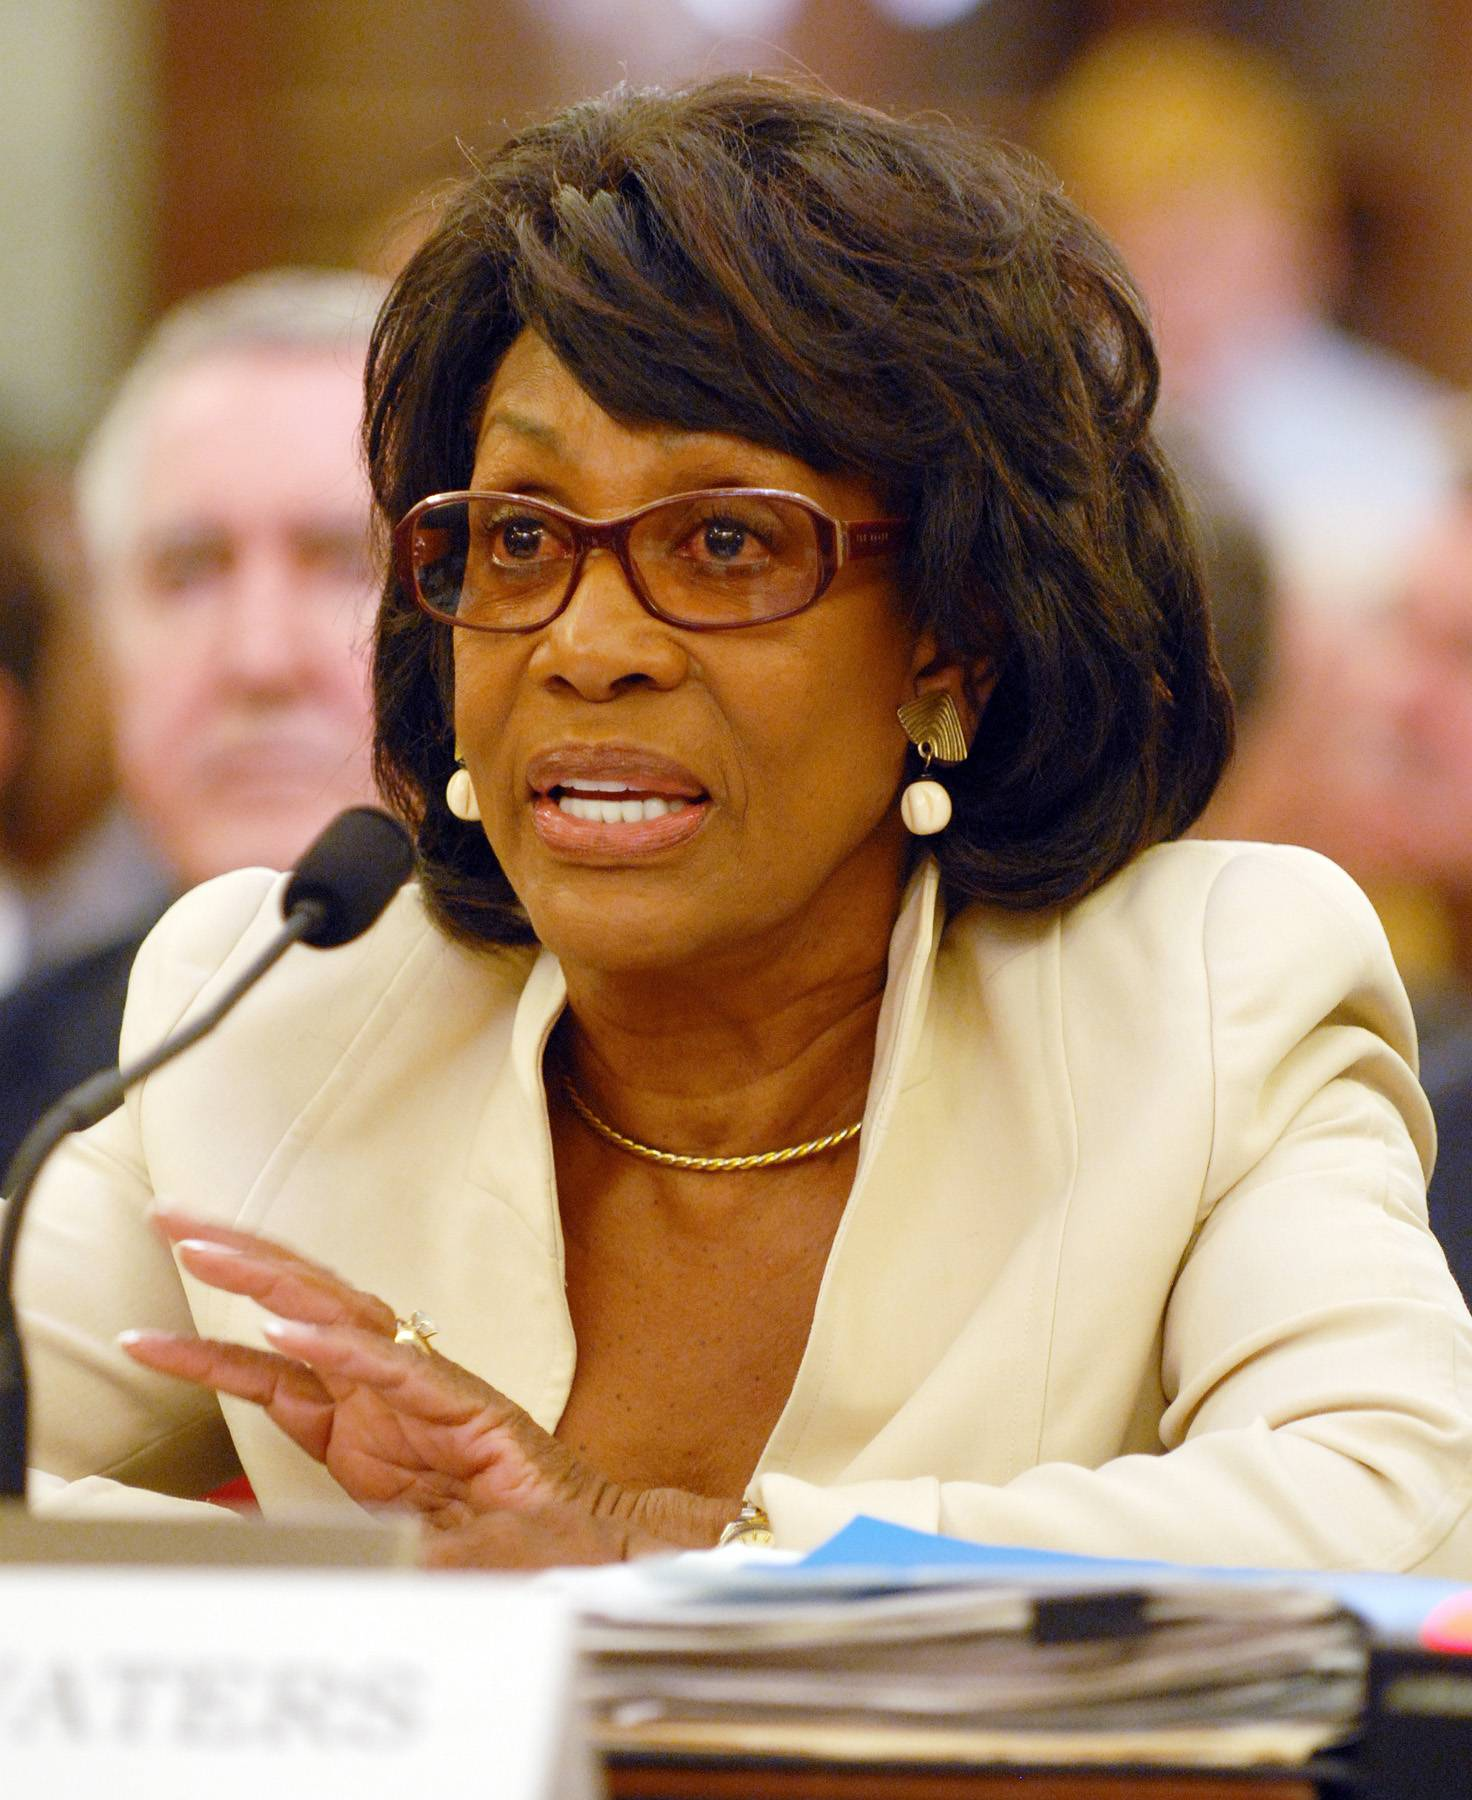 Maxine Waters - California Rep. Maxine Waters has a well earned reputation for not suffering fools or Republicans lightly. Now that she's the House Financial Services Committee's top Democrat, Wall Street beware. (Photo: UPI Photo/Roger L. Wollenberg /Landov)